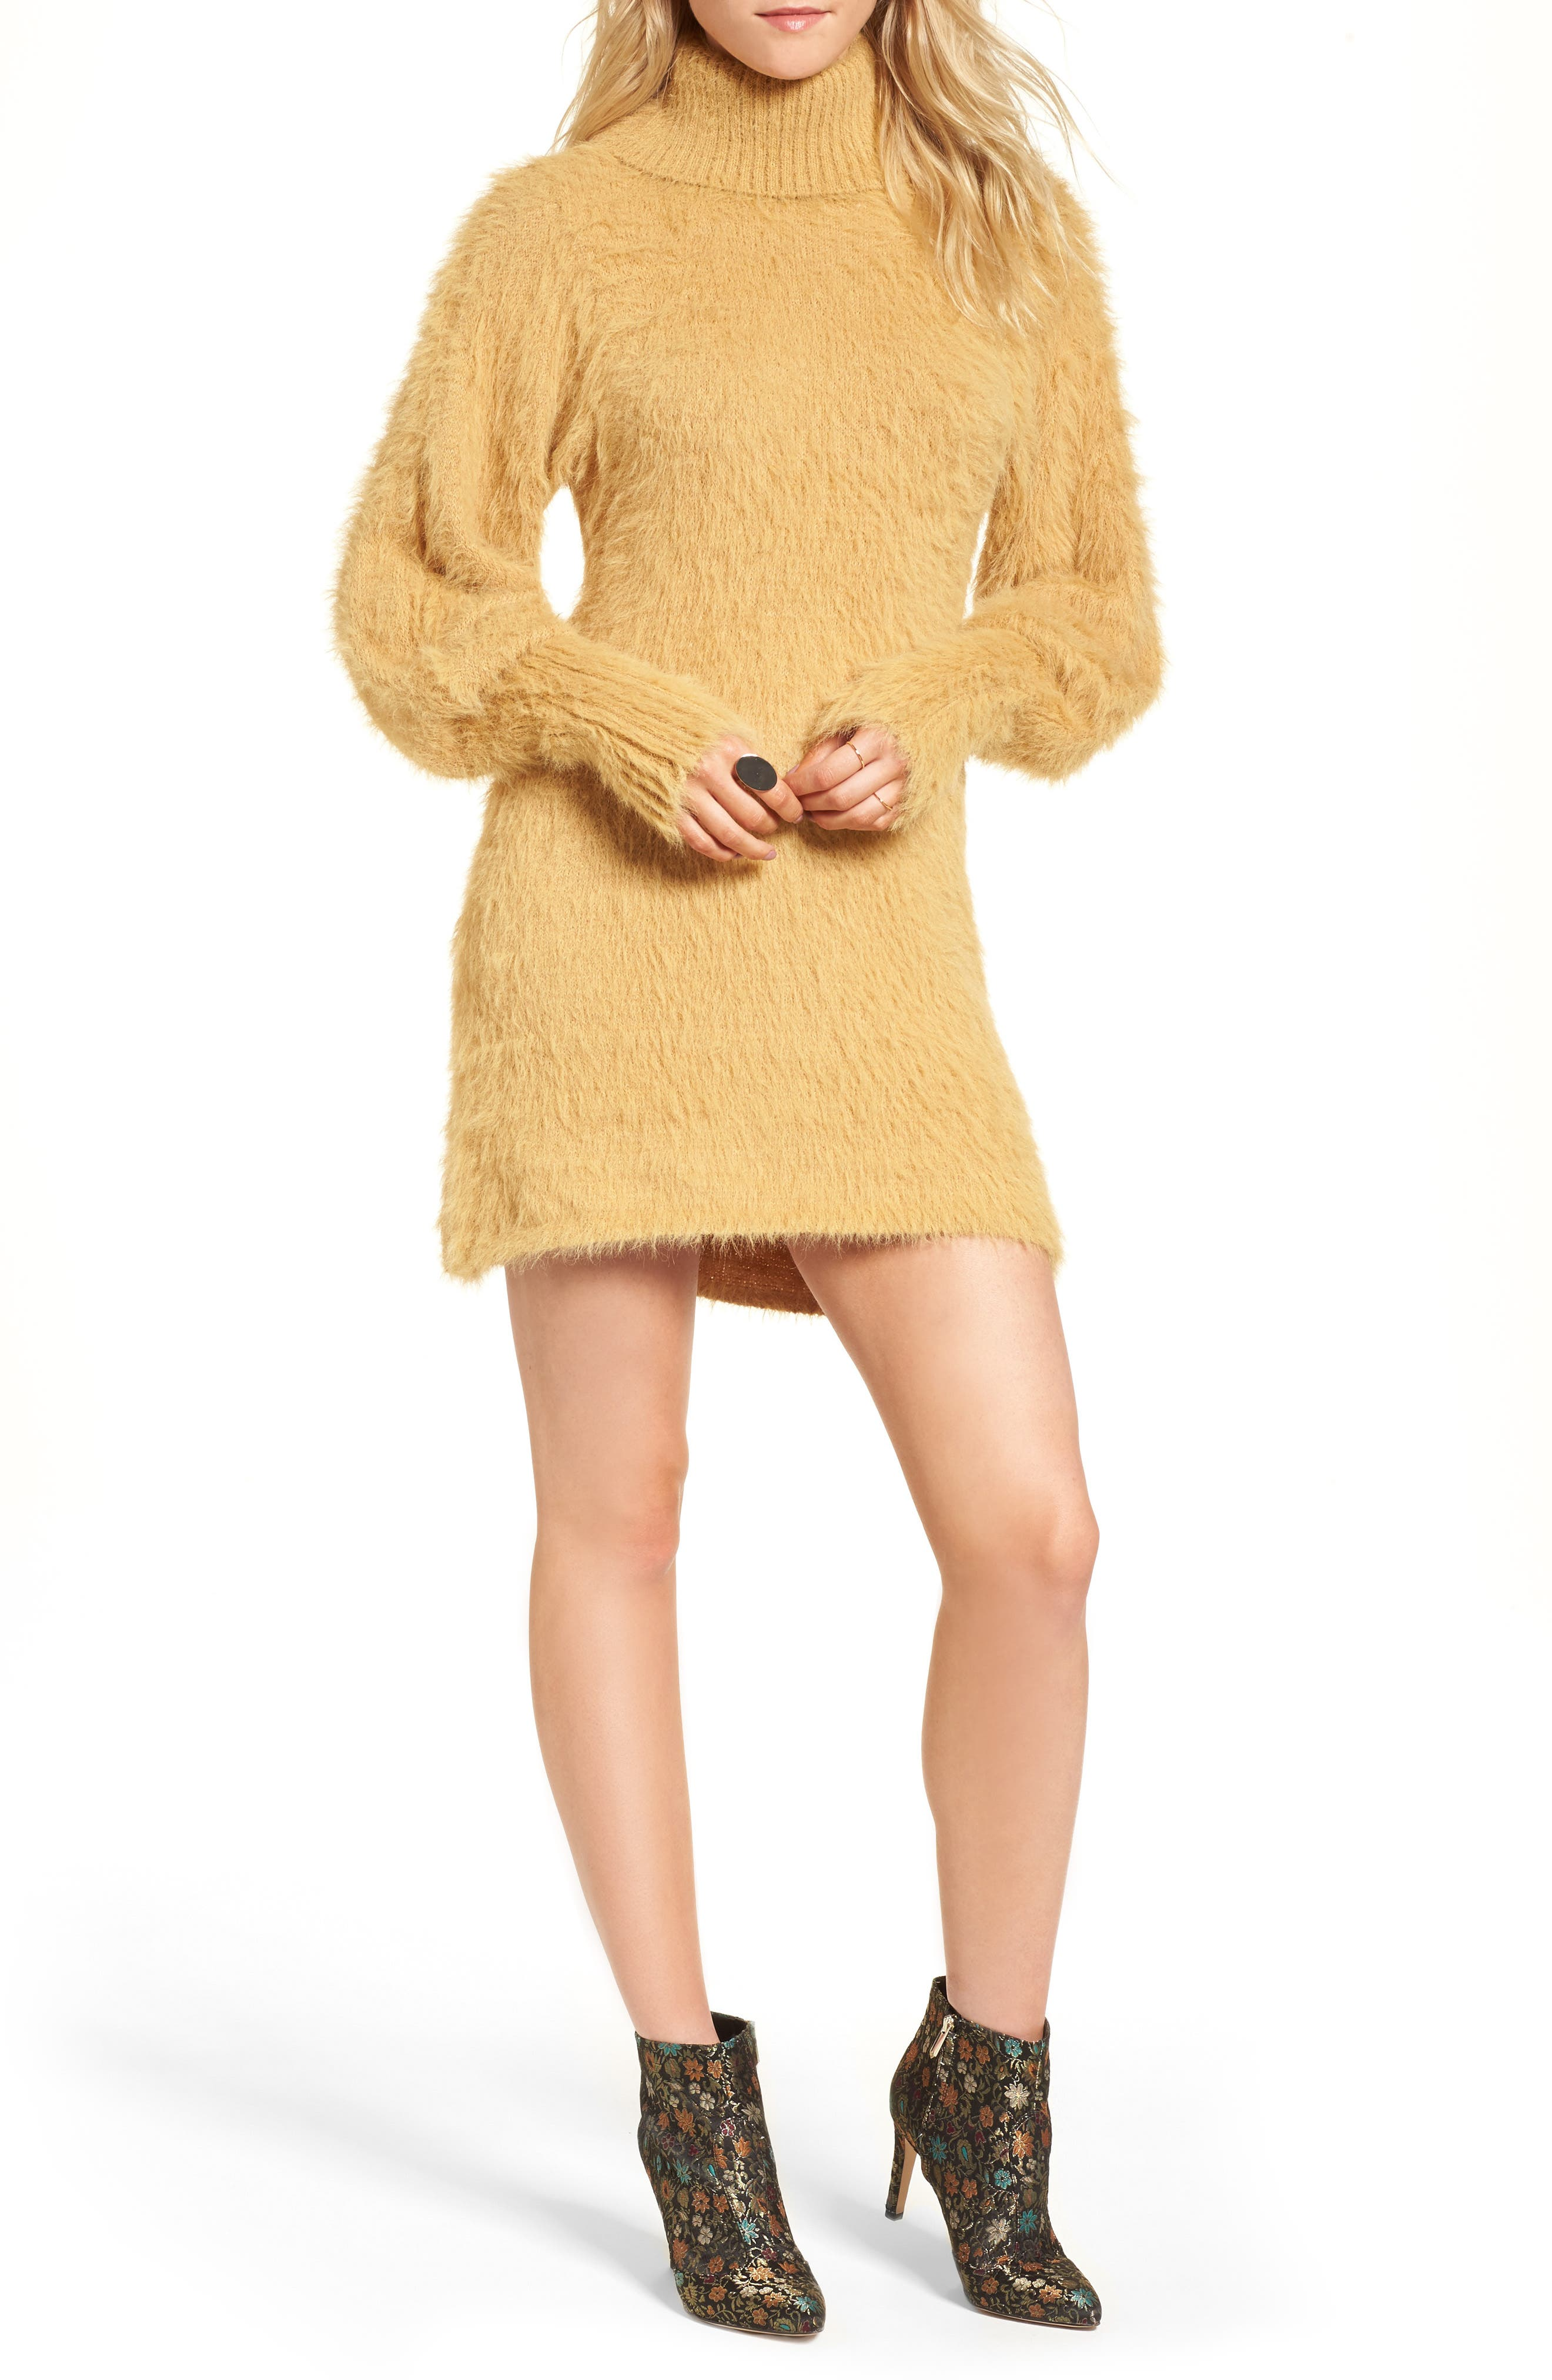 Free People Honey Turtleneck Minidress